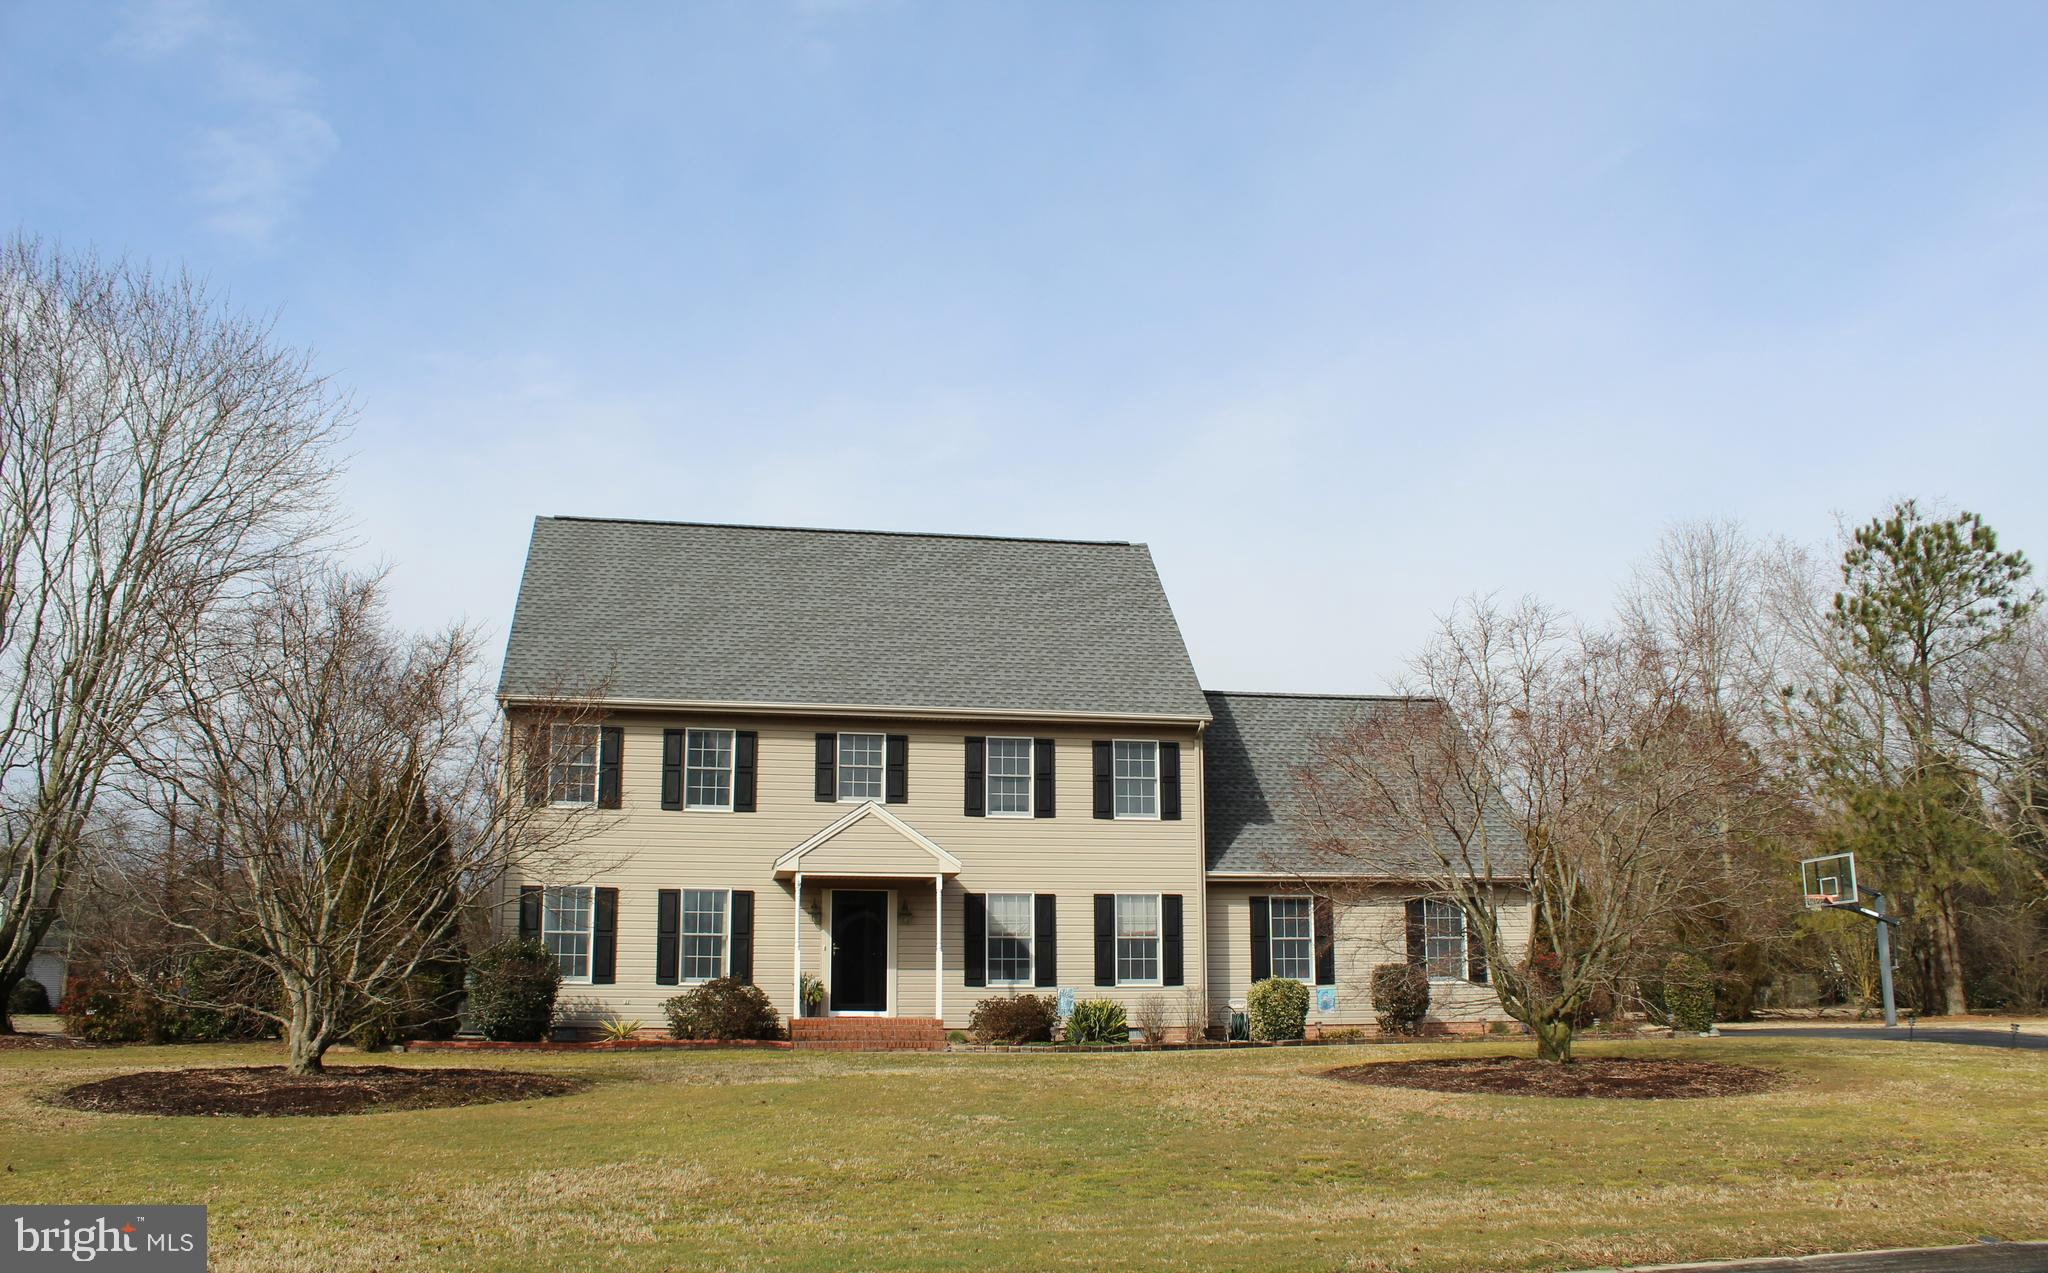 This beautiful 4 bedroom home is on a large corner lot in the desirable community of Coulbourne Mill